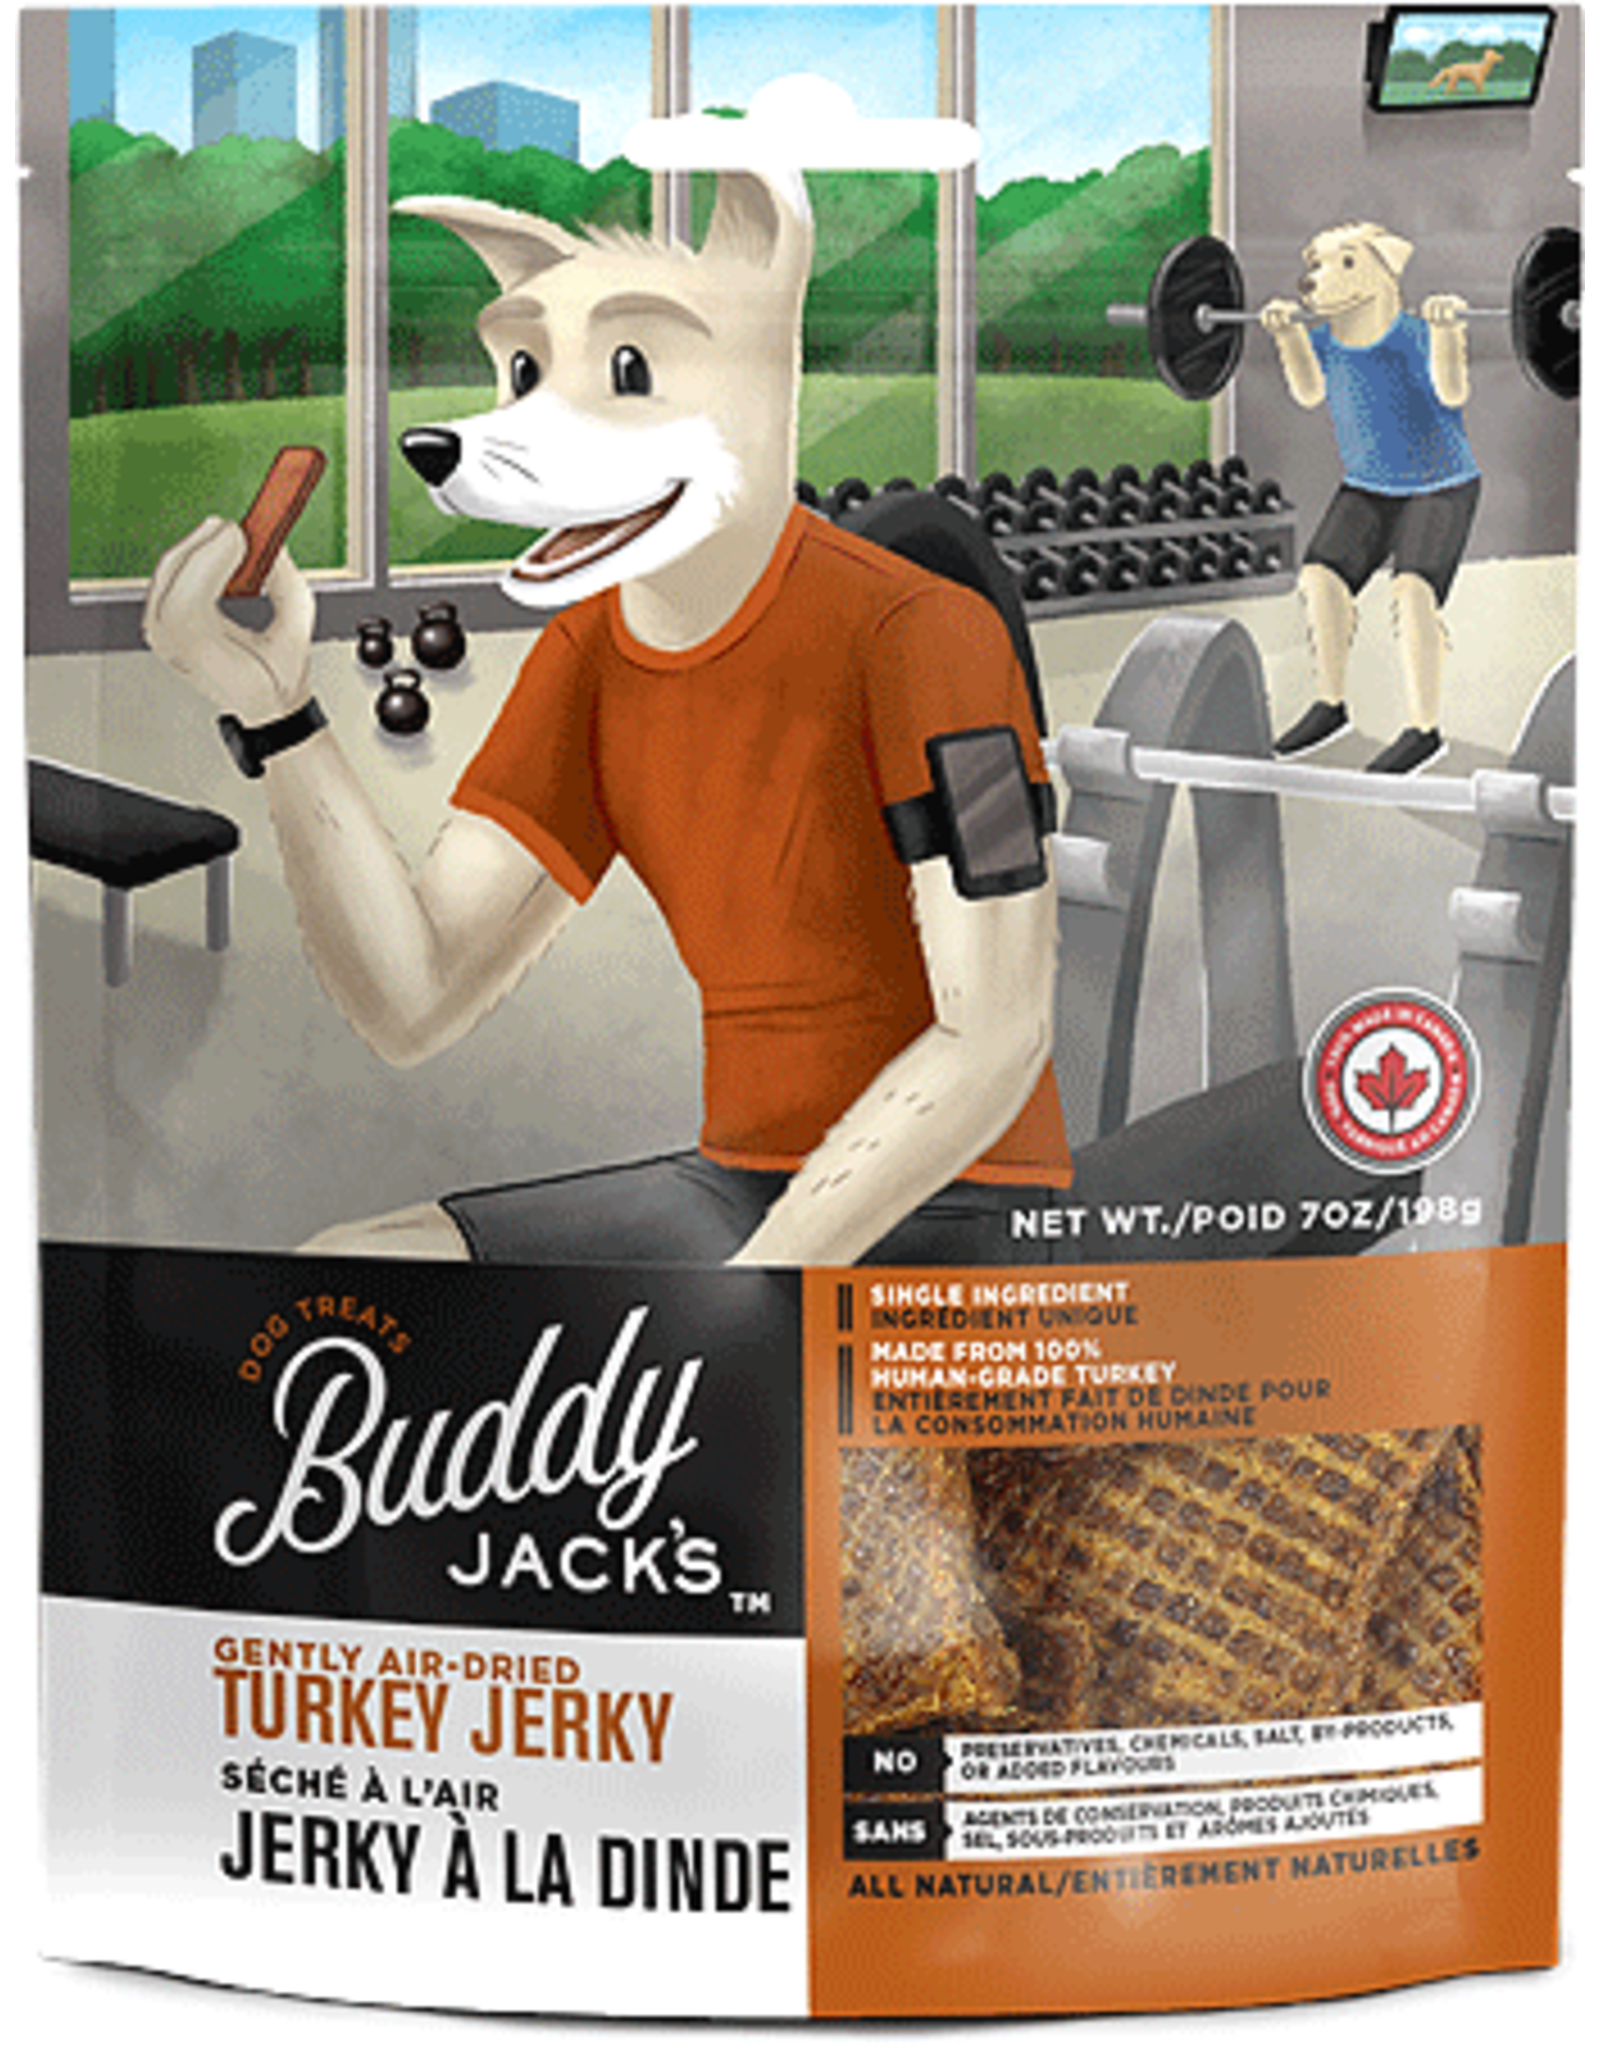 Canadian Jerky Co. BUDDY JACKS Jerky Turkey 7oz